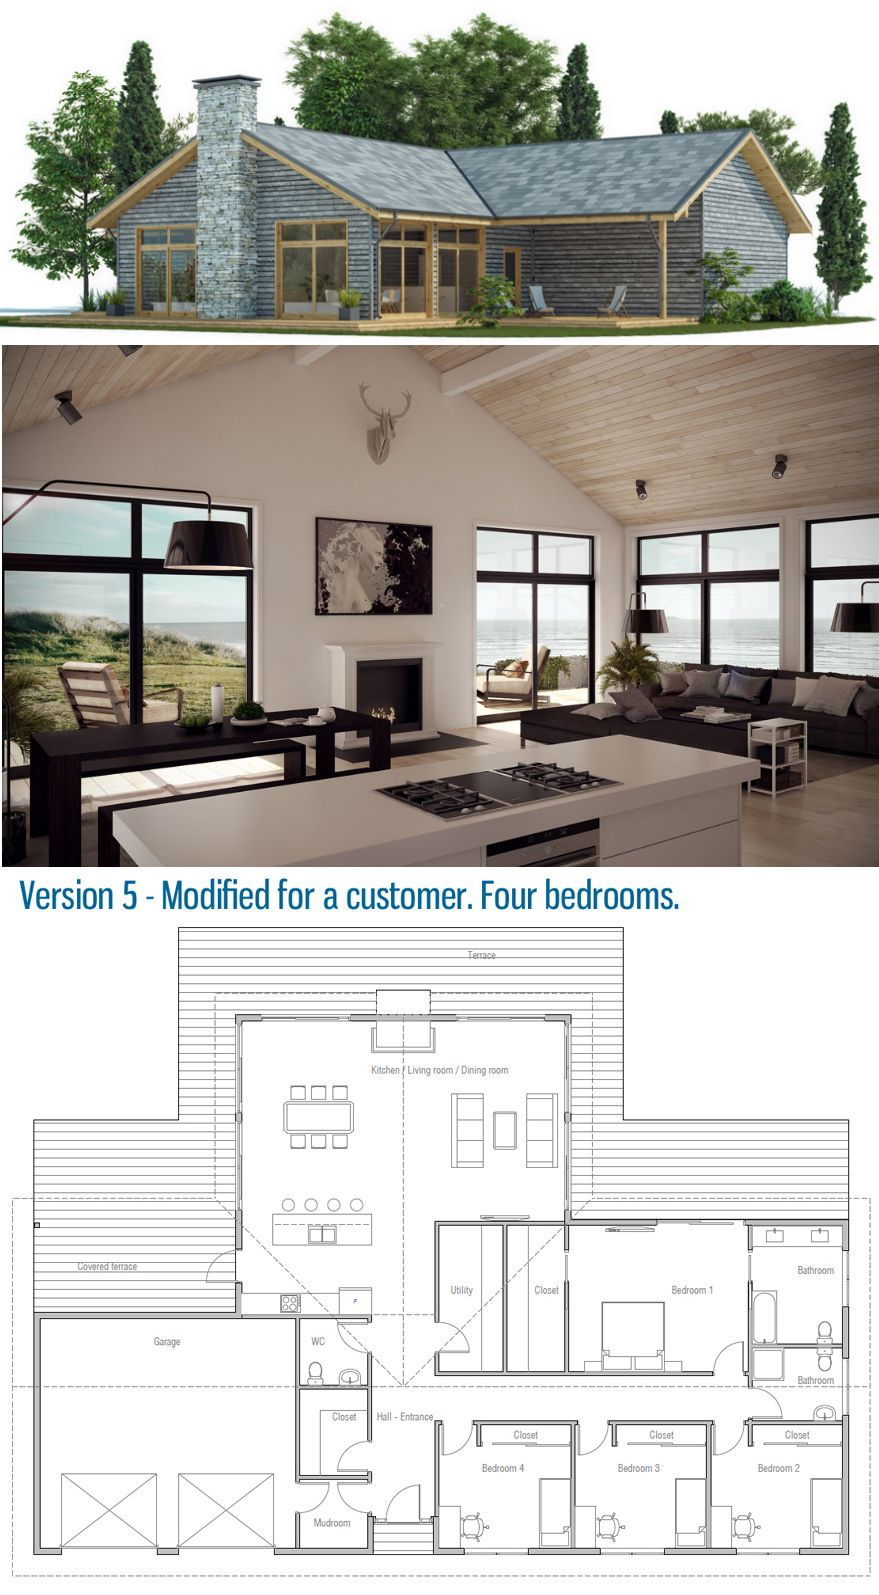 Customer home plan modified house design bungalow plans dream small also best images in diy ideas for rh pinterest